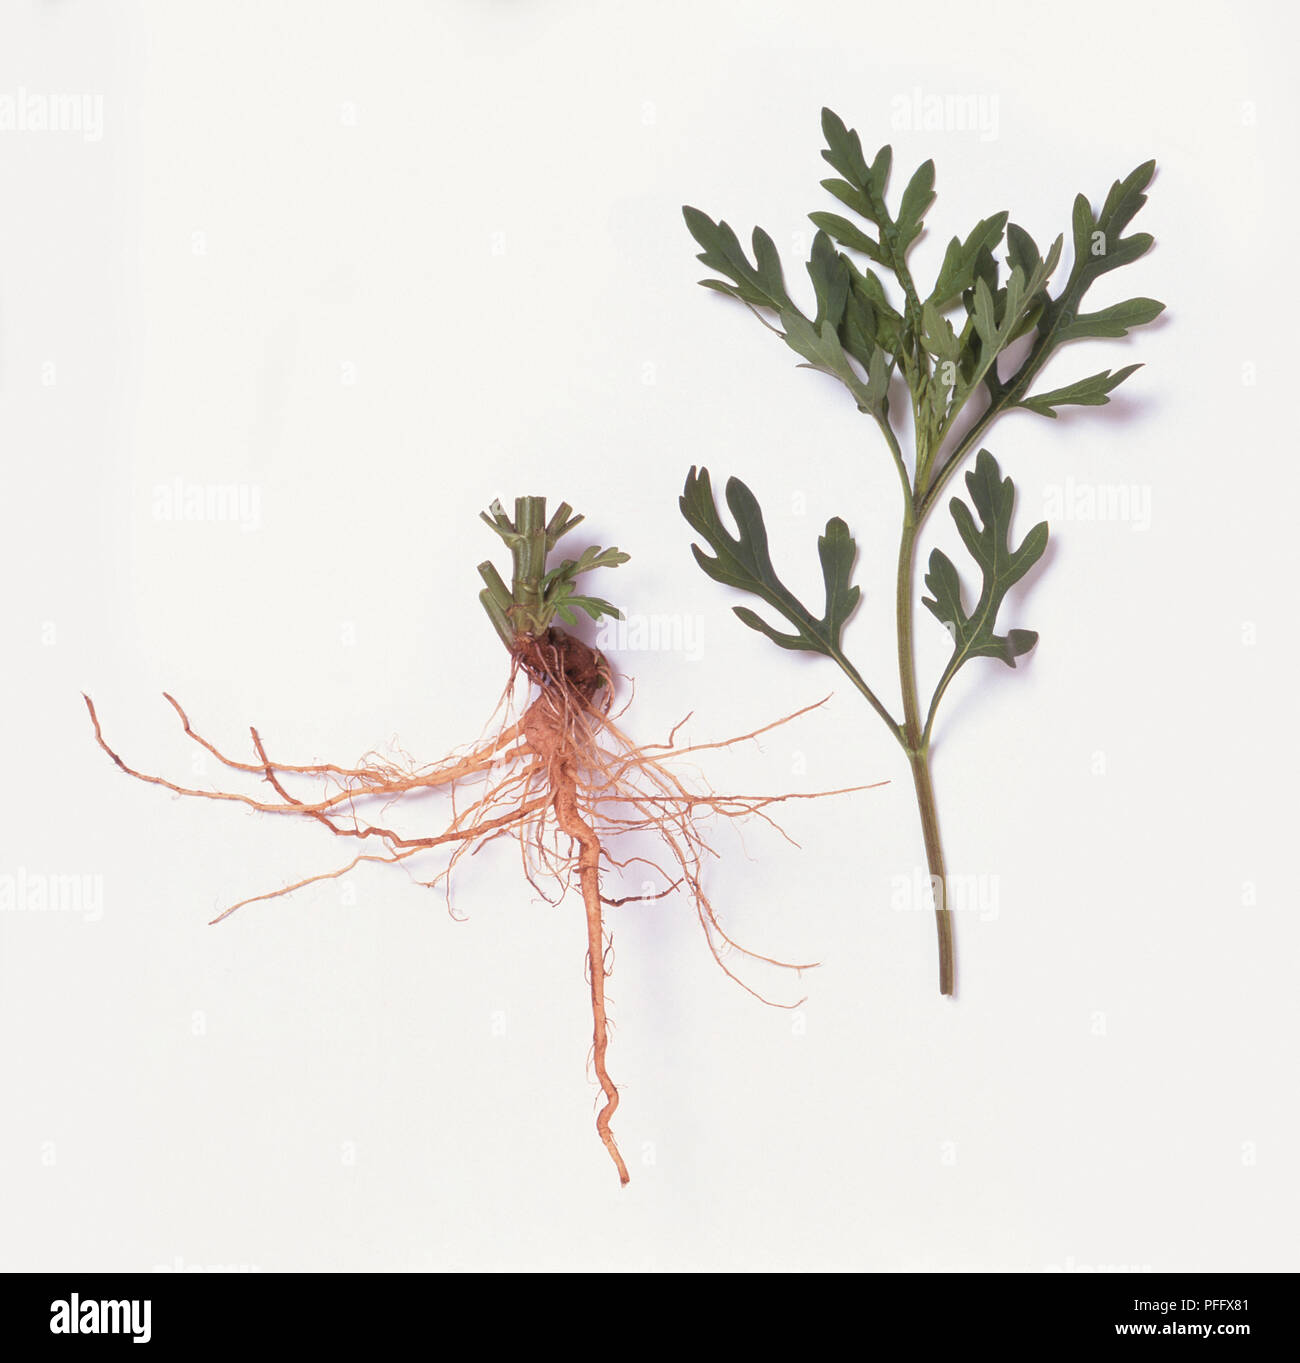 Roots and leaves from Ambrosia artemisiifolia (Common ragweed), close-up Stock Photo